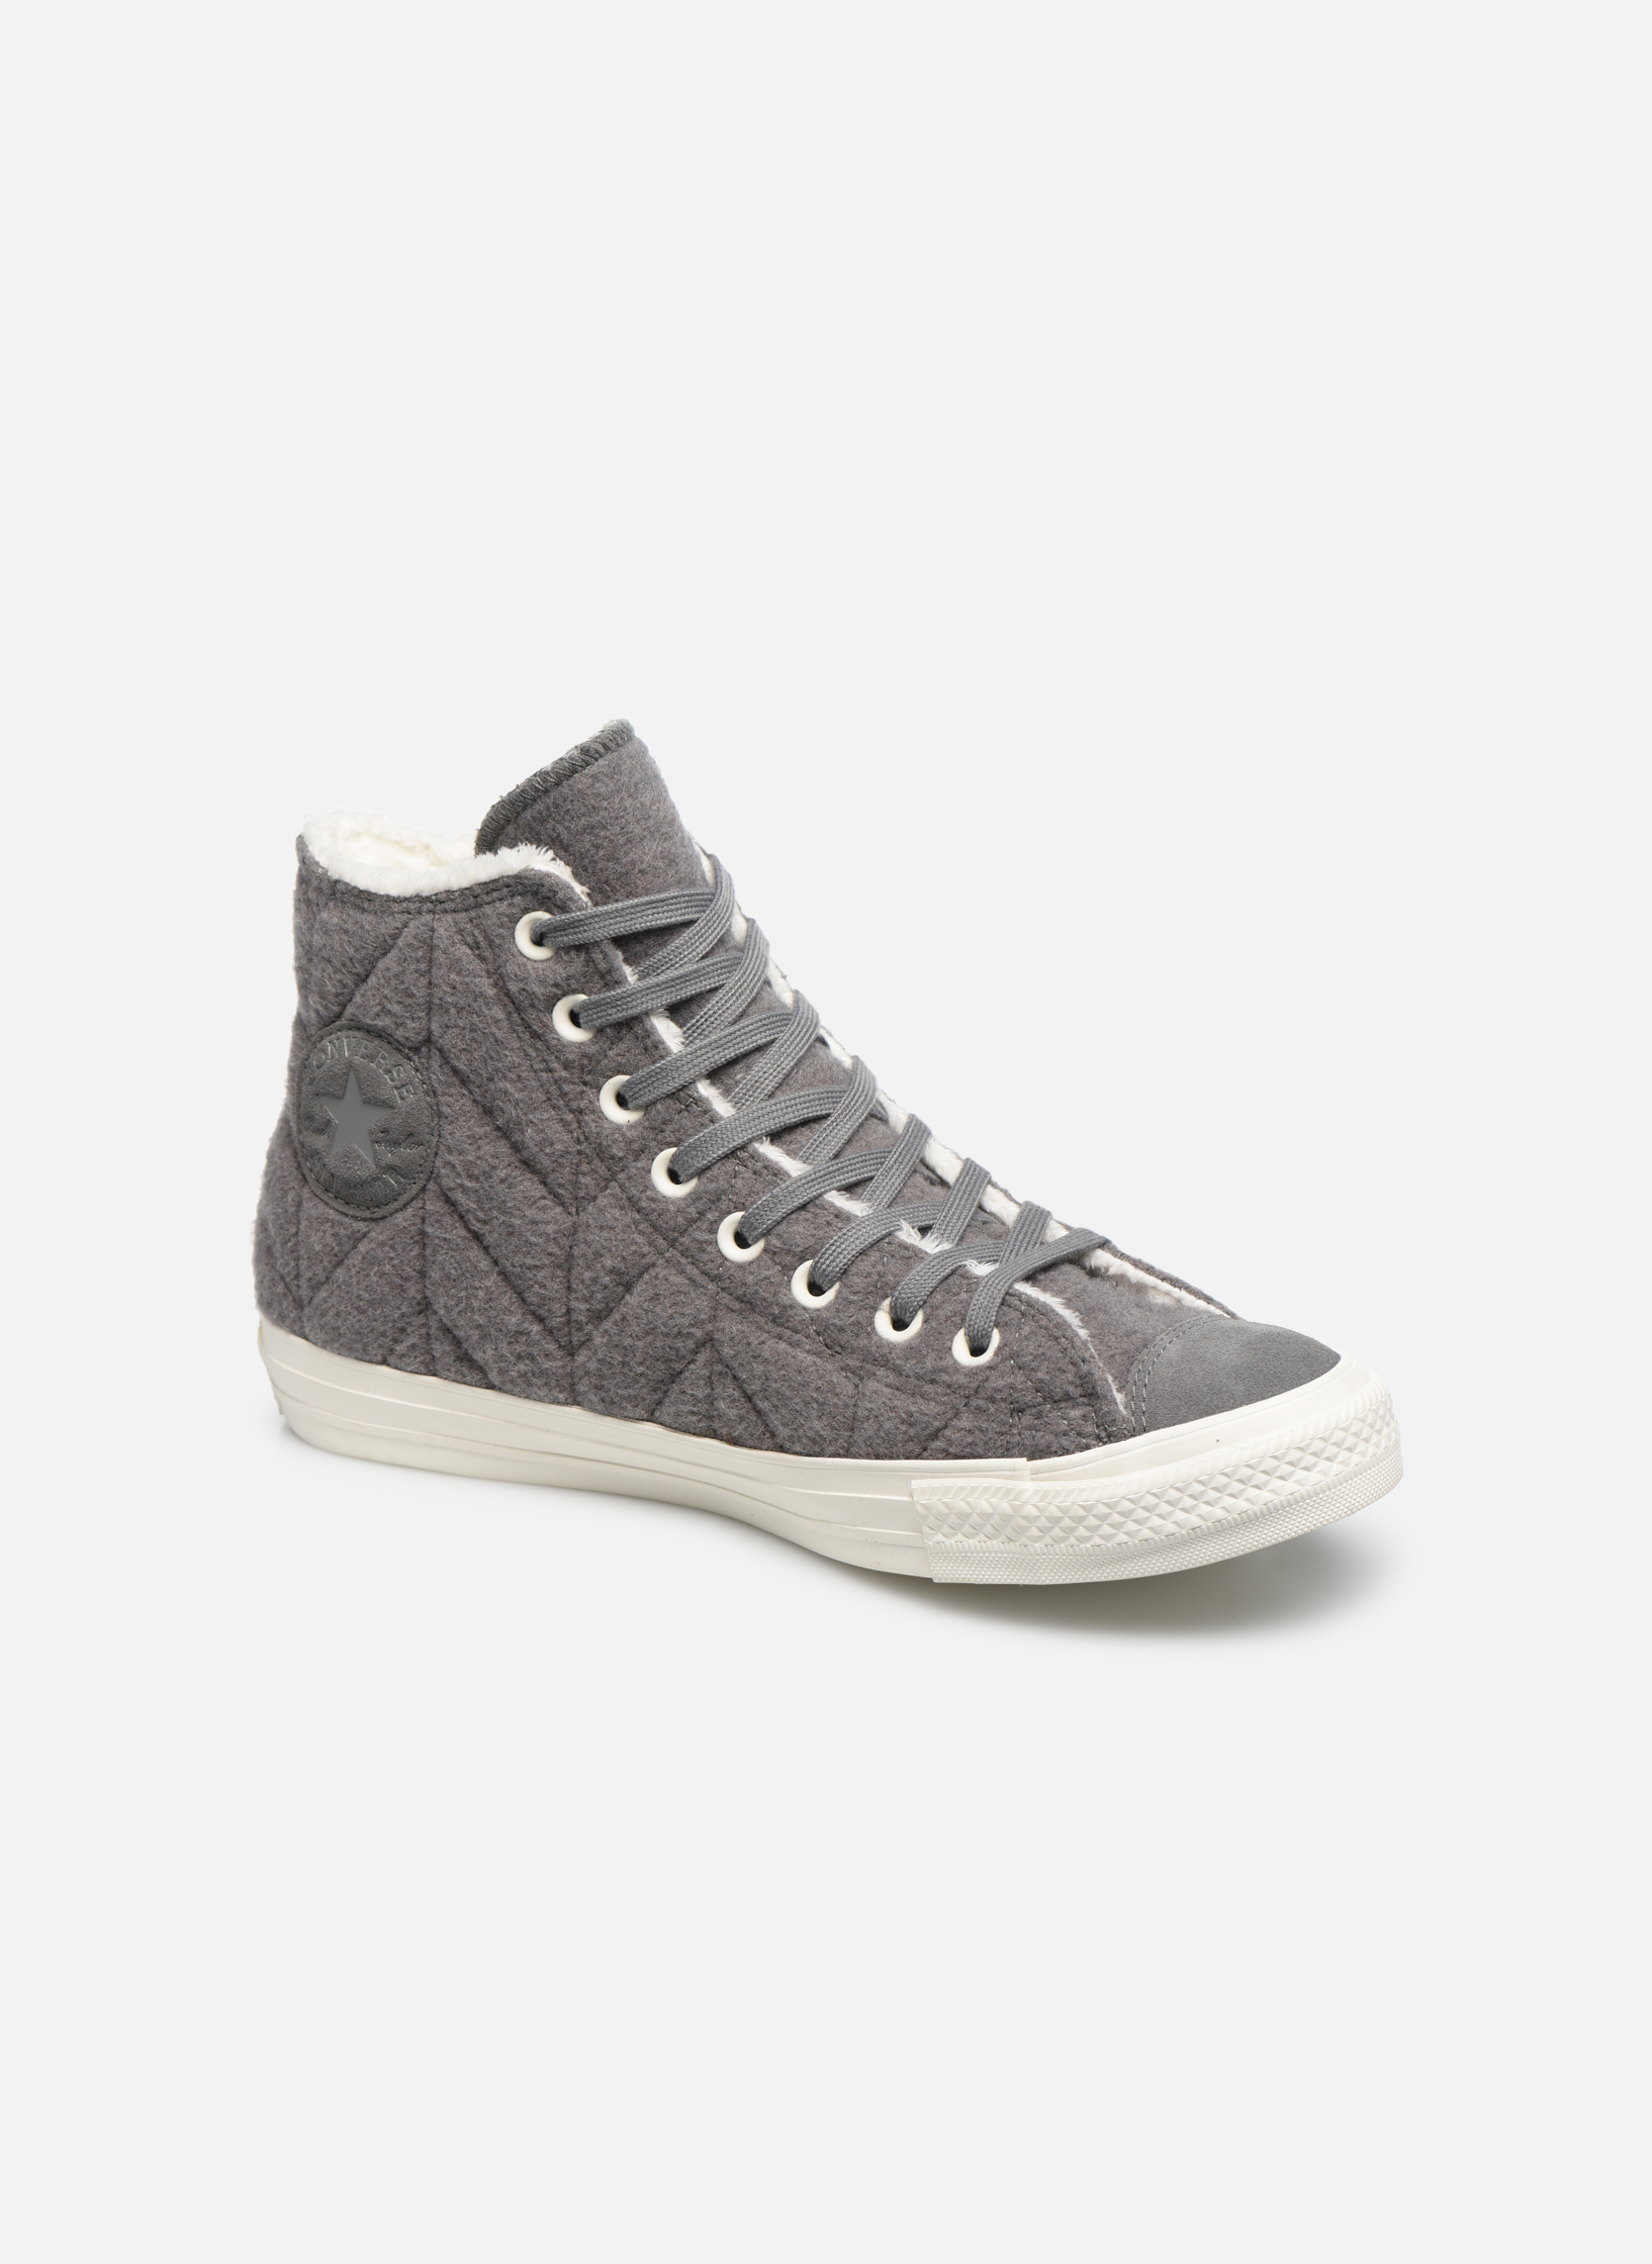 Baskets Femme Chuck Taylor All Star Wool Hi